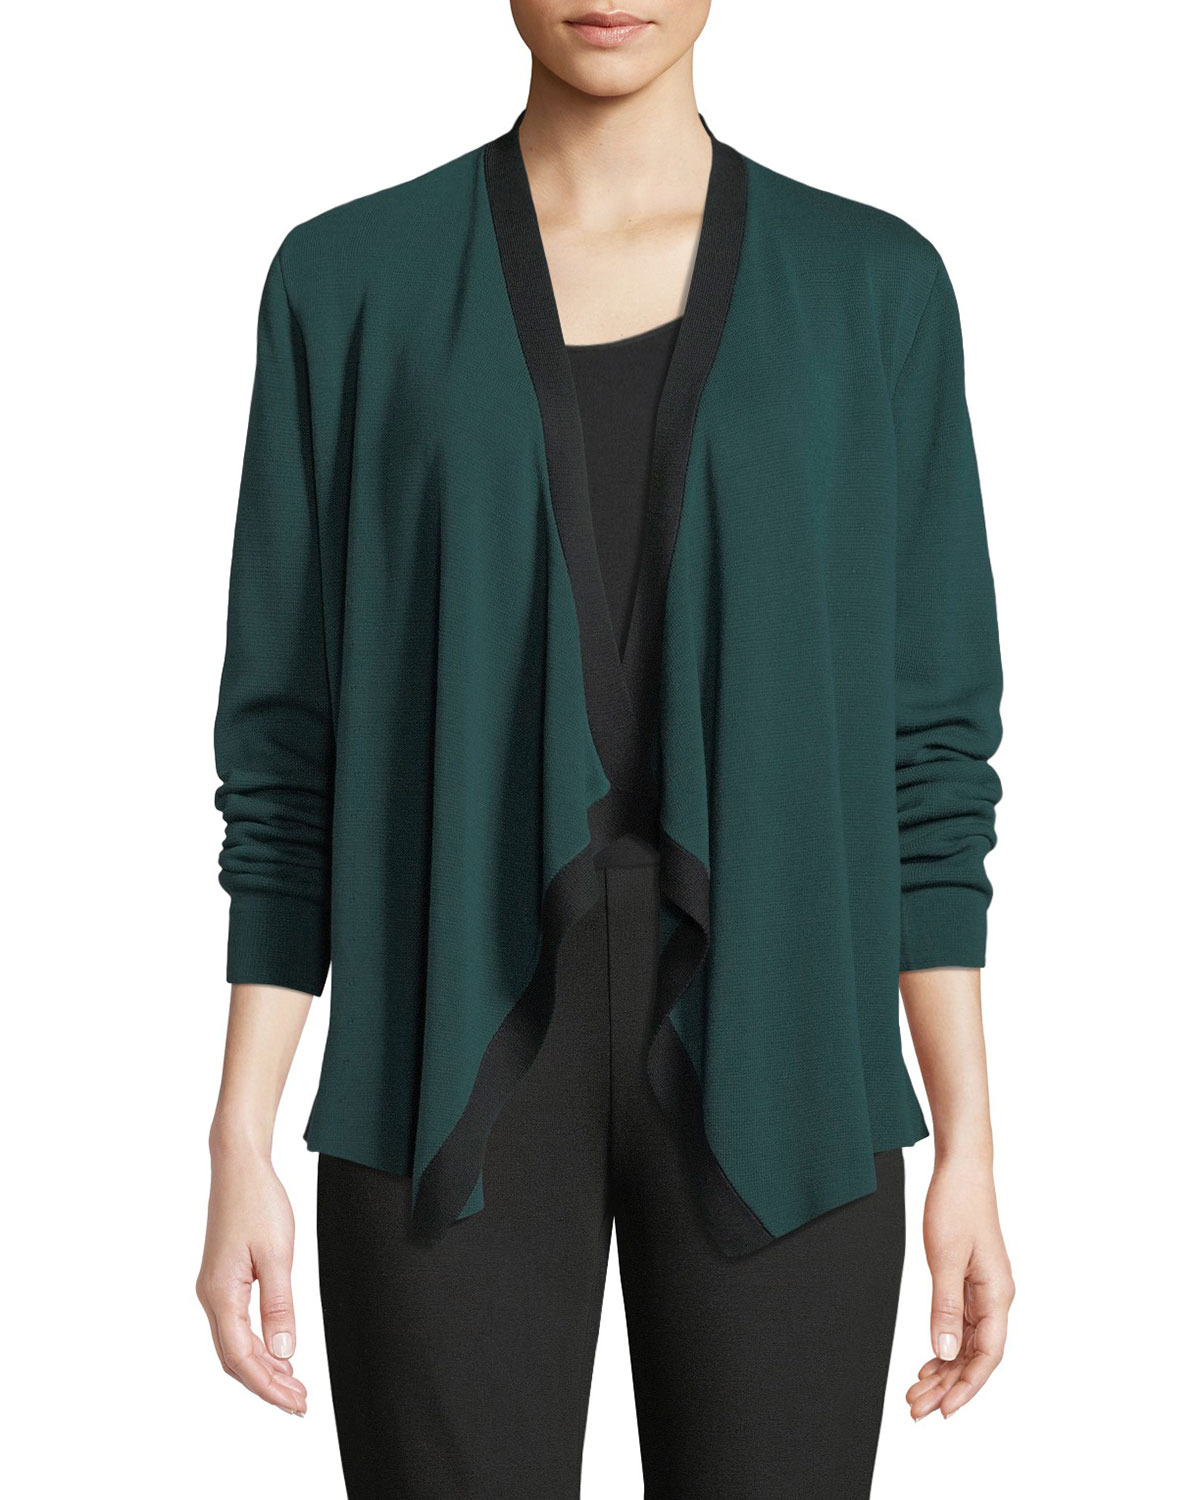 Angled-Front Colorblock Cardigan, Plus Size